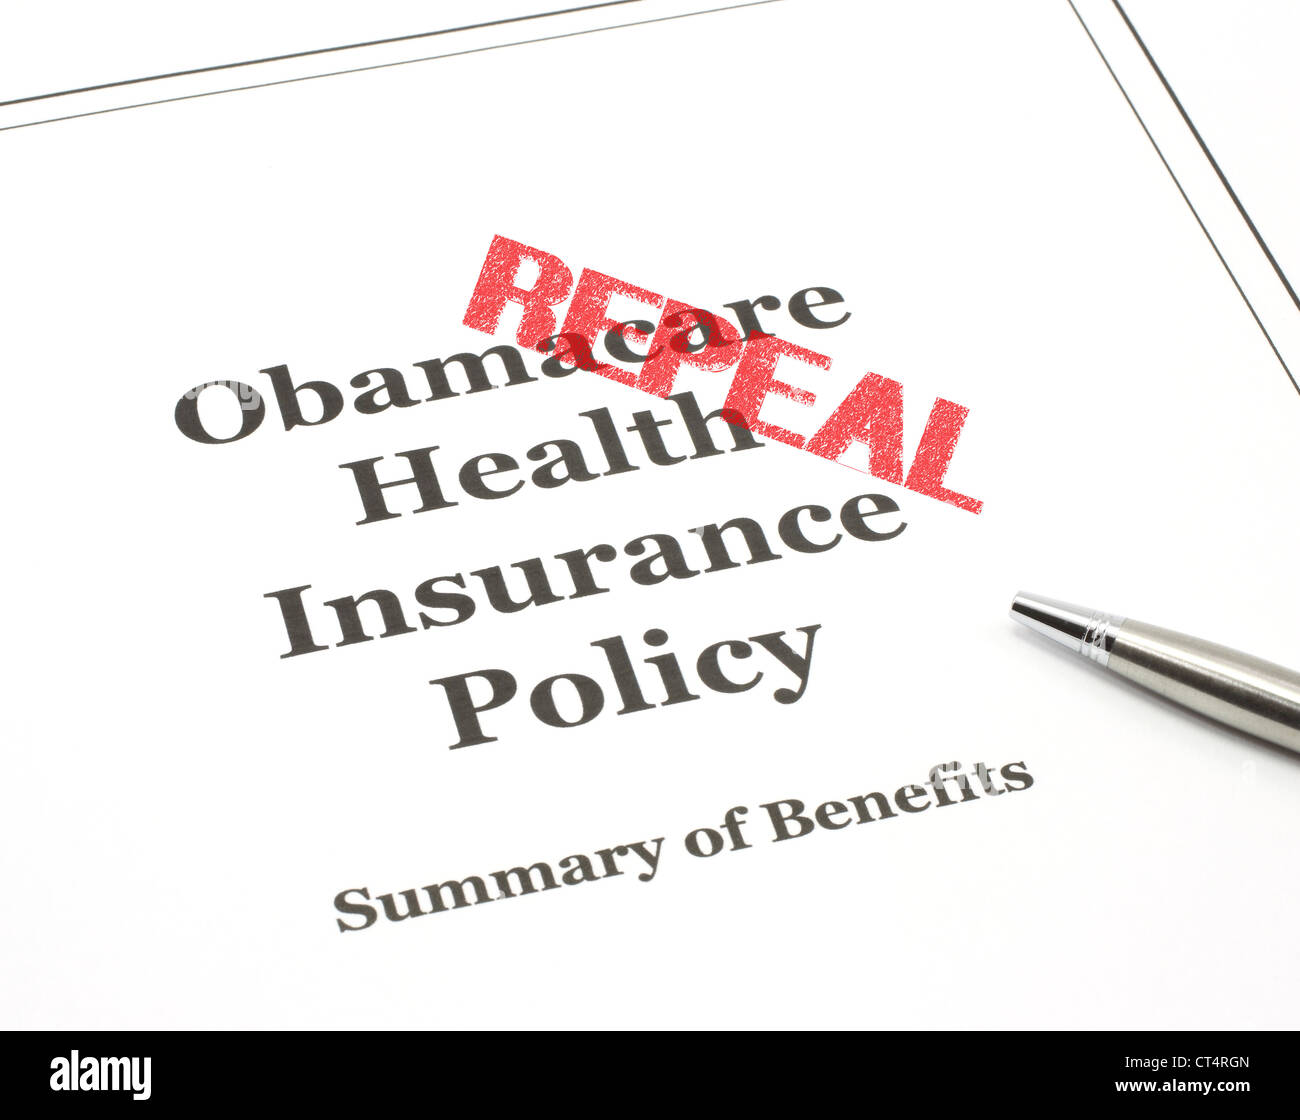 Obamacare government health care insurance program policy with a pen ready to be signed. - Stock Image